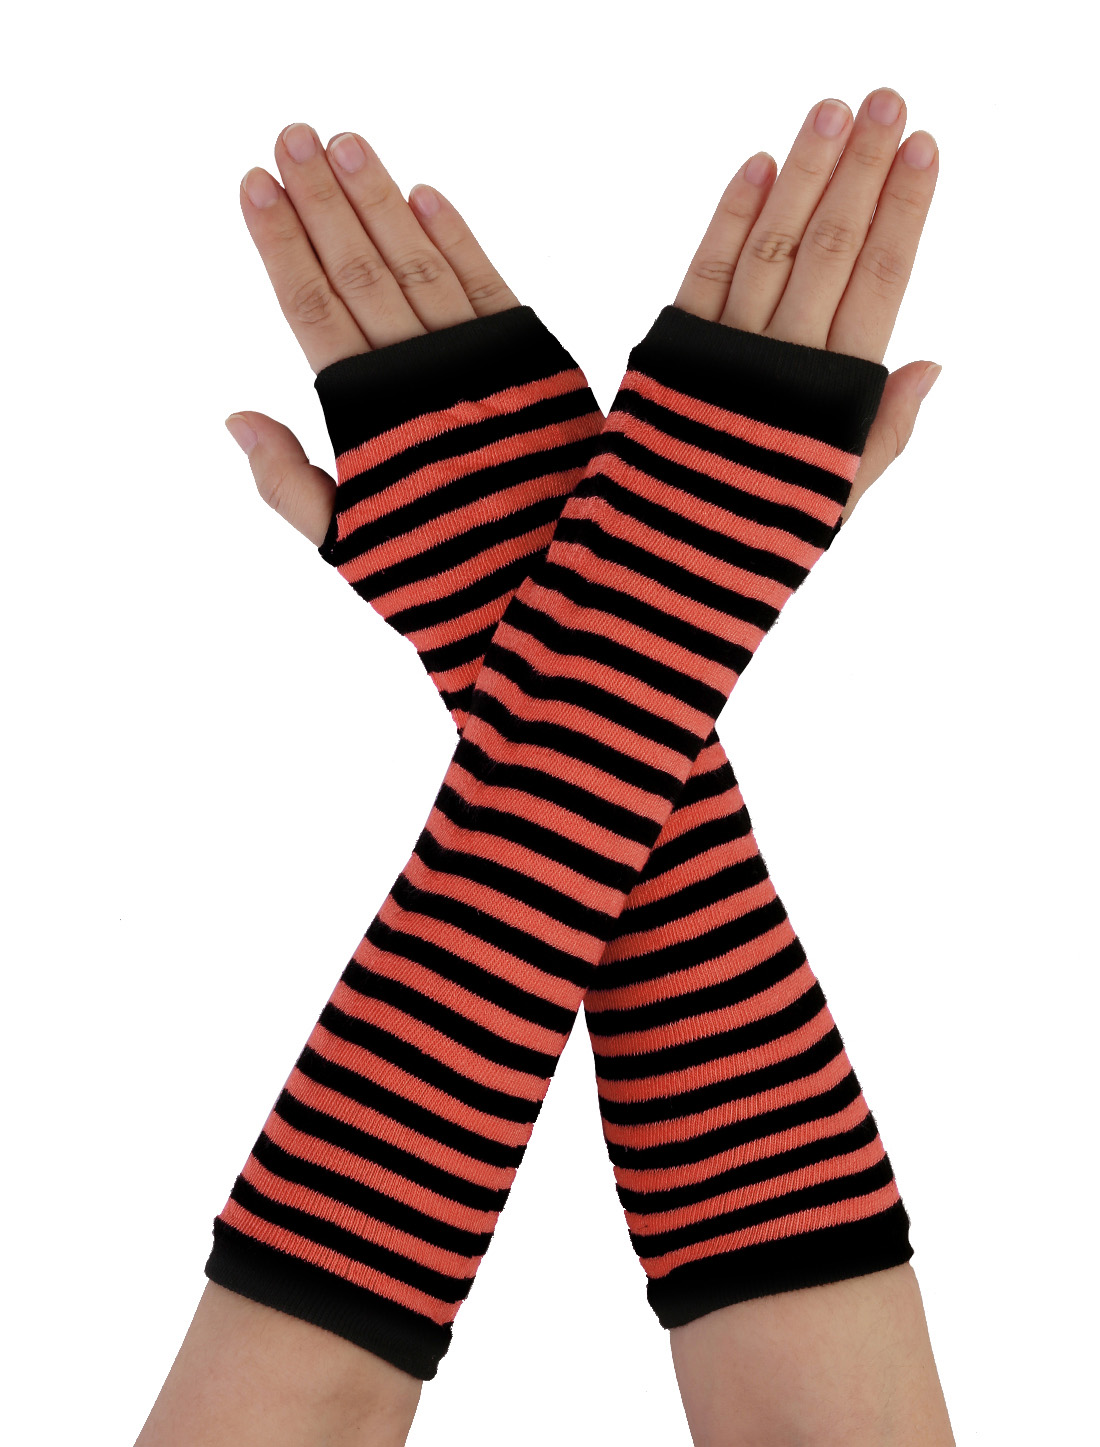 Women Black Red Stripe Pattern Elbow Length Fingerless Arm Warmers Gloves Pair